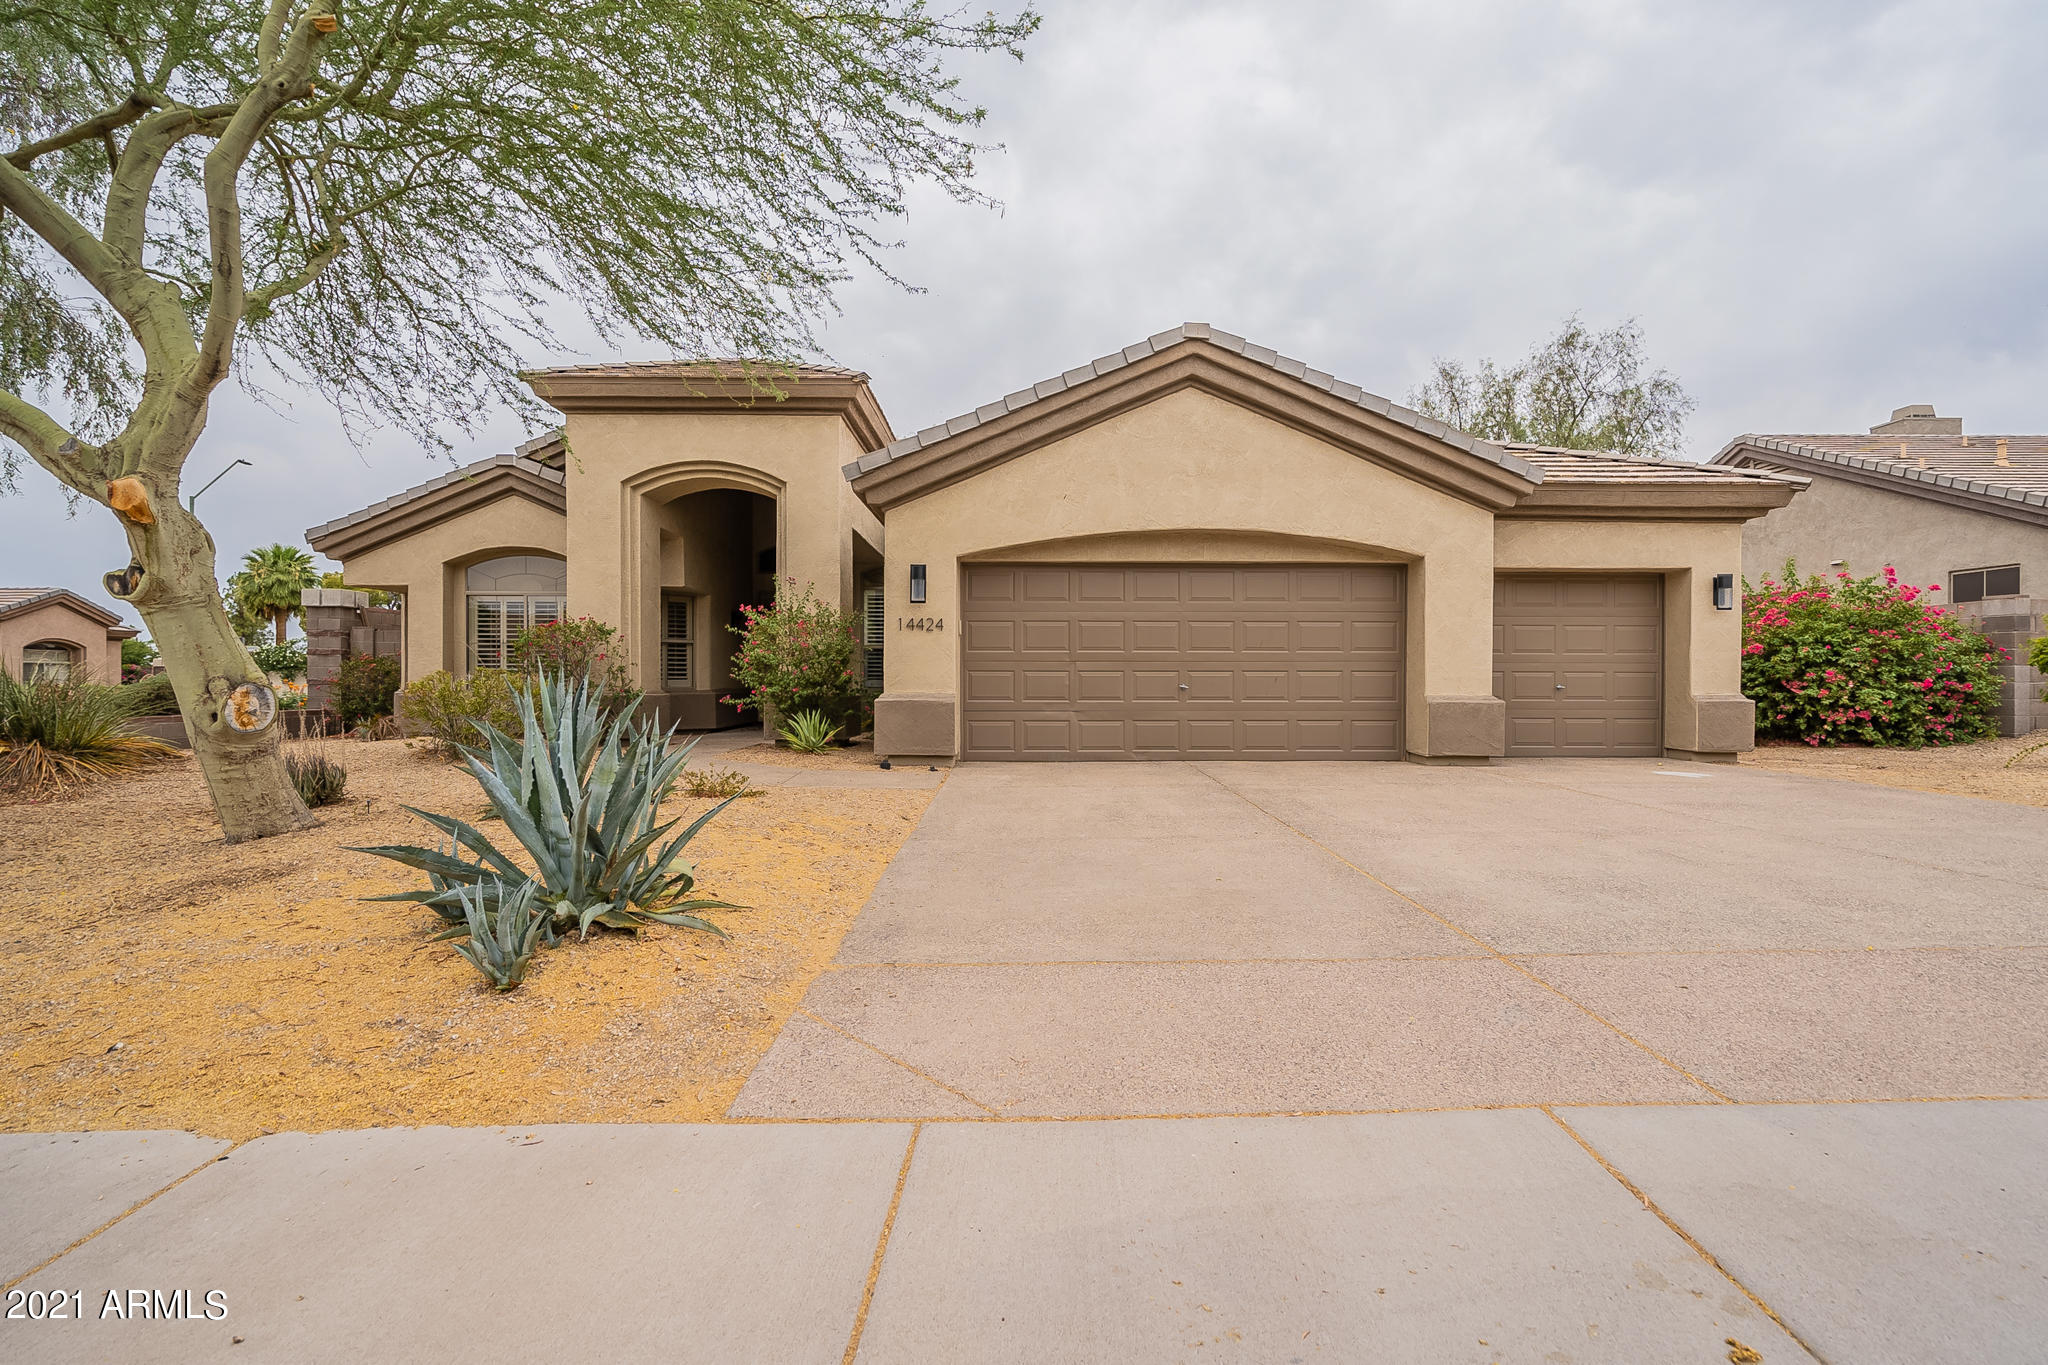 14424 64TH Place, Scottsdale, Arizona 85254, 3 Bedrooms Bedrooms, ,2 BathroomsBathrooms,Residential Rental,For Rent,64TH,6248820